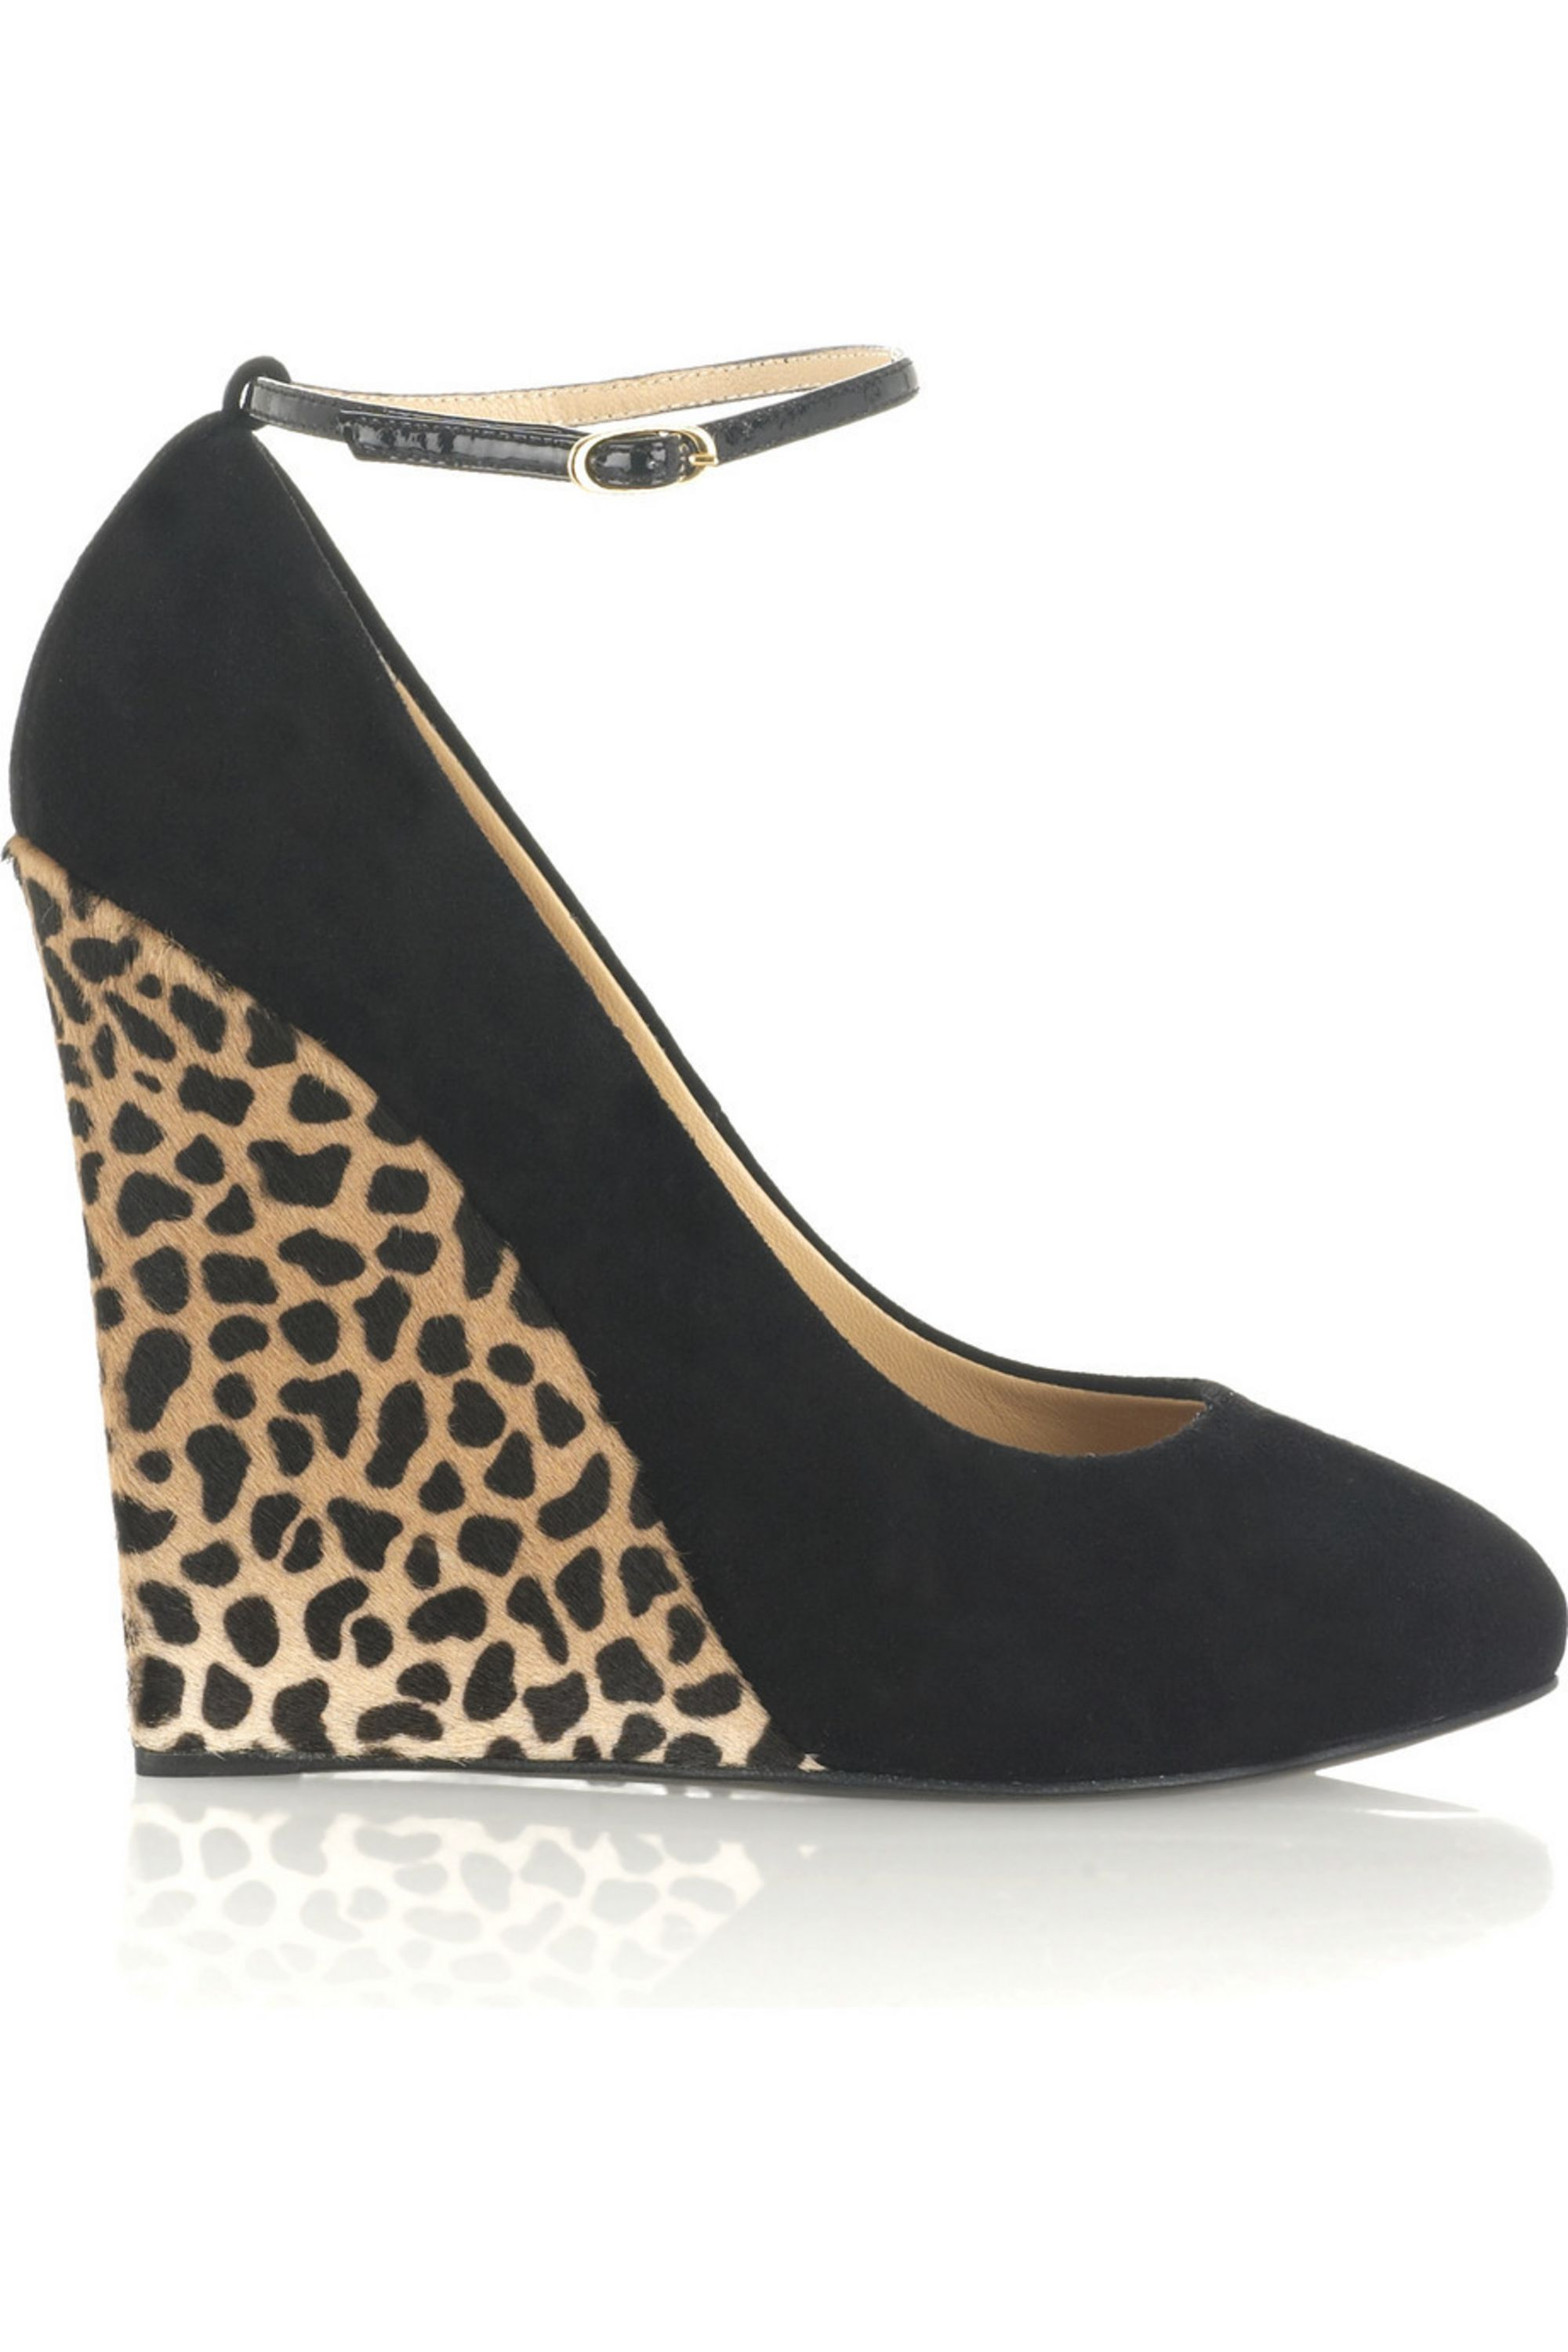 Giuseppe Zanotti Suede leopard-print wedges